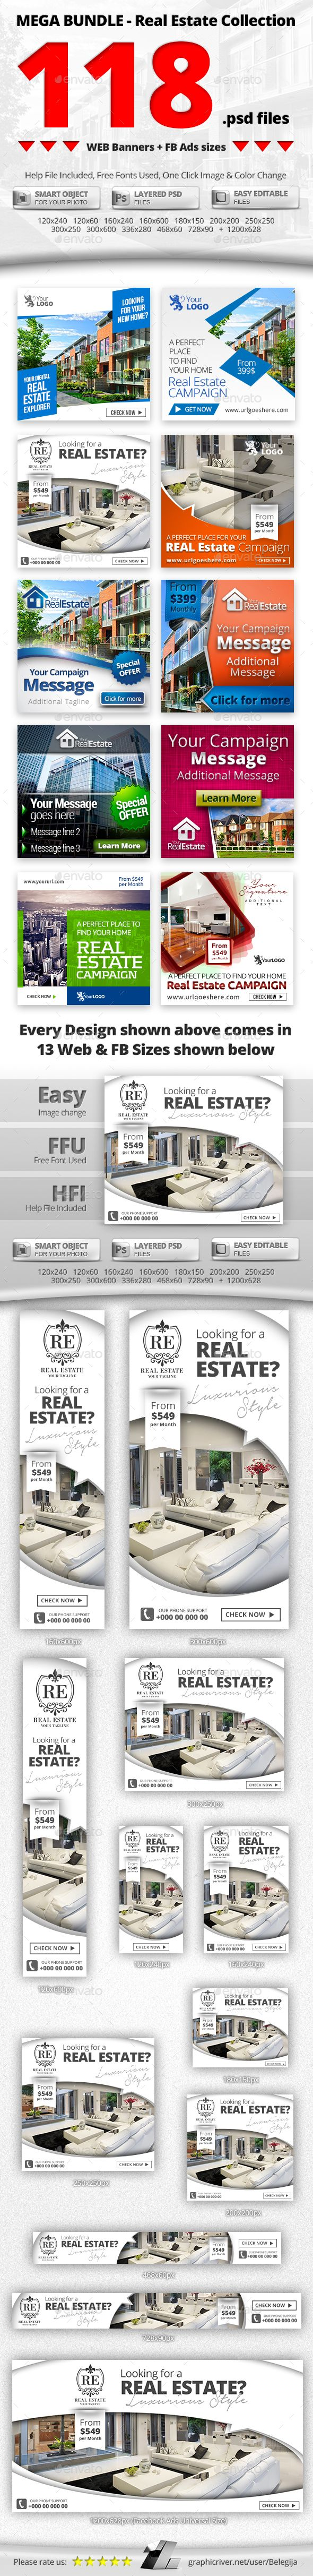 10 in 1 Real Estate Web & FB Banners - Mega Bundle 1